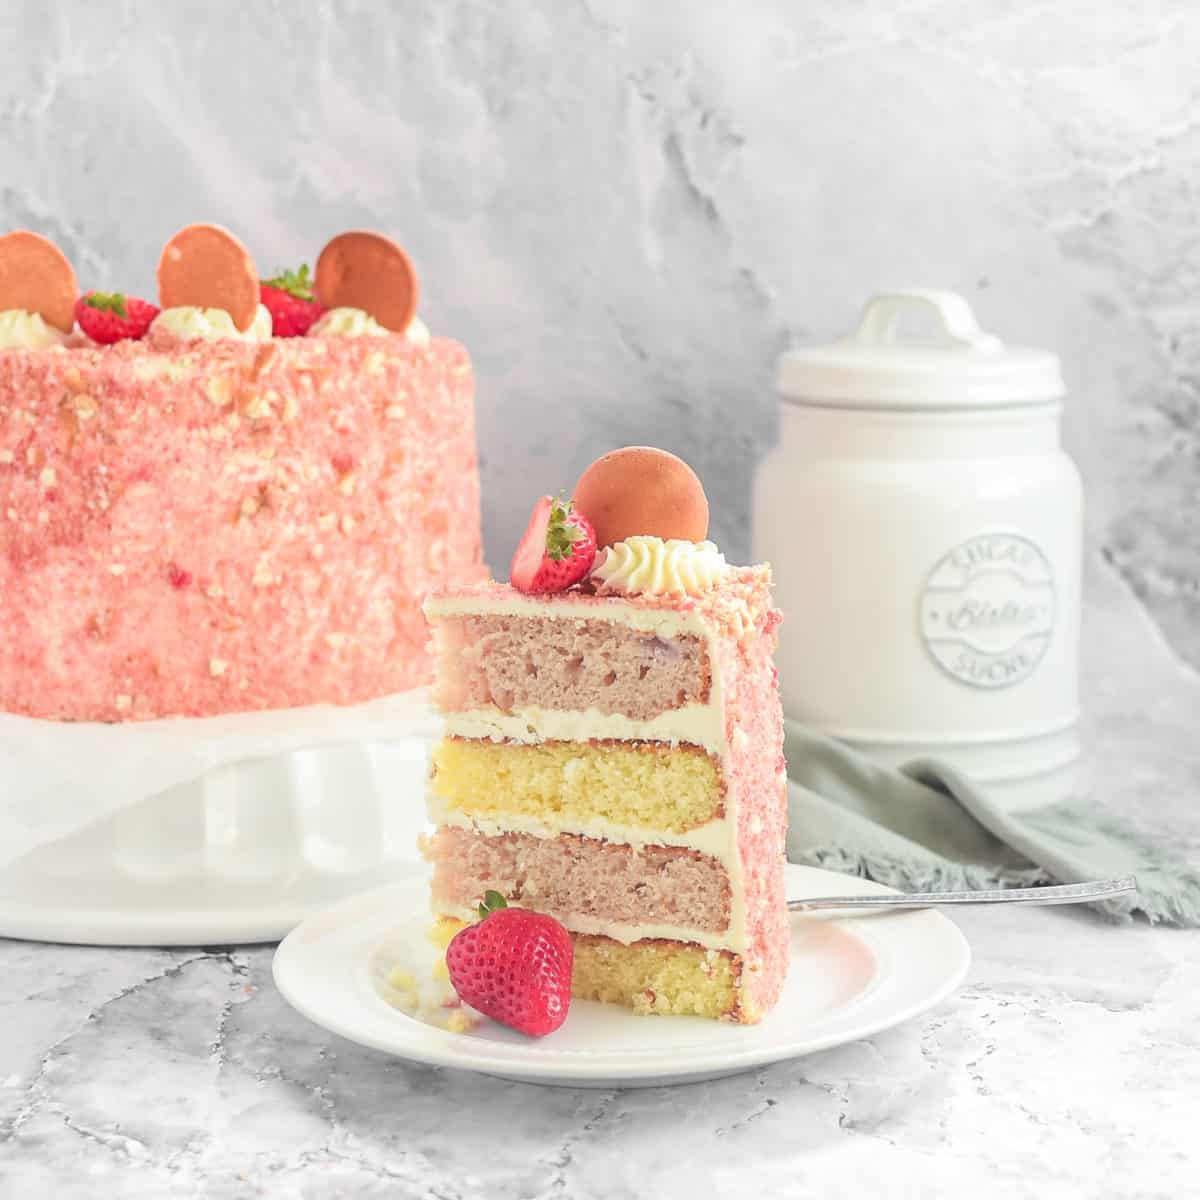 A slice of cake on a plate with fresh strawberries.